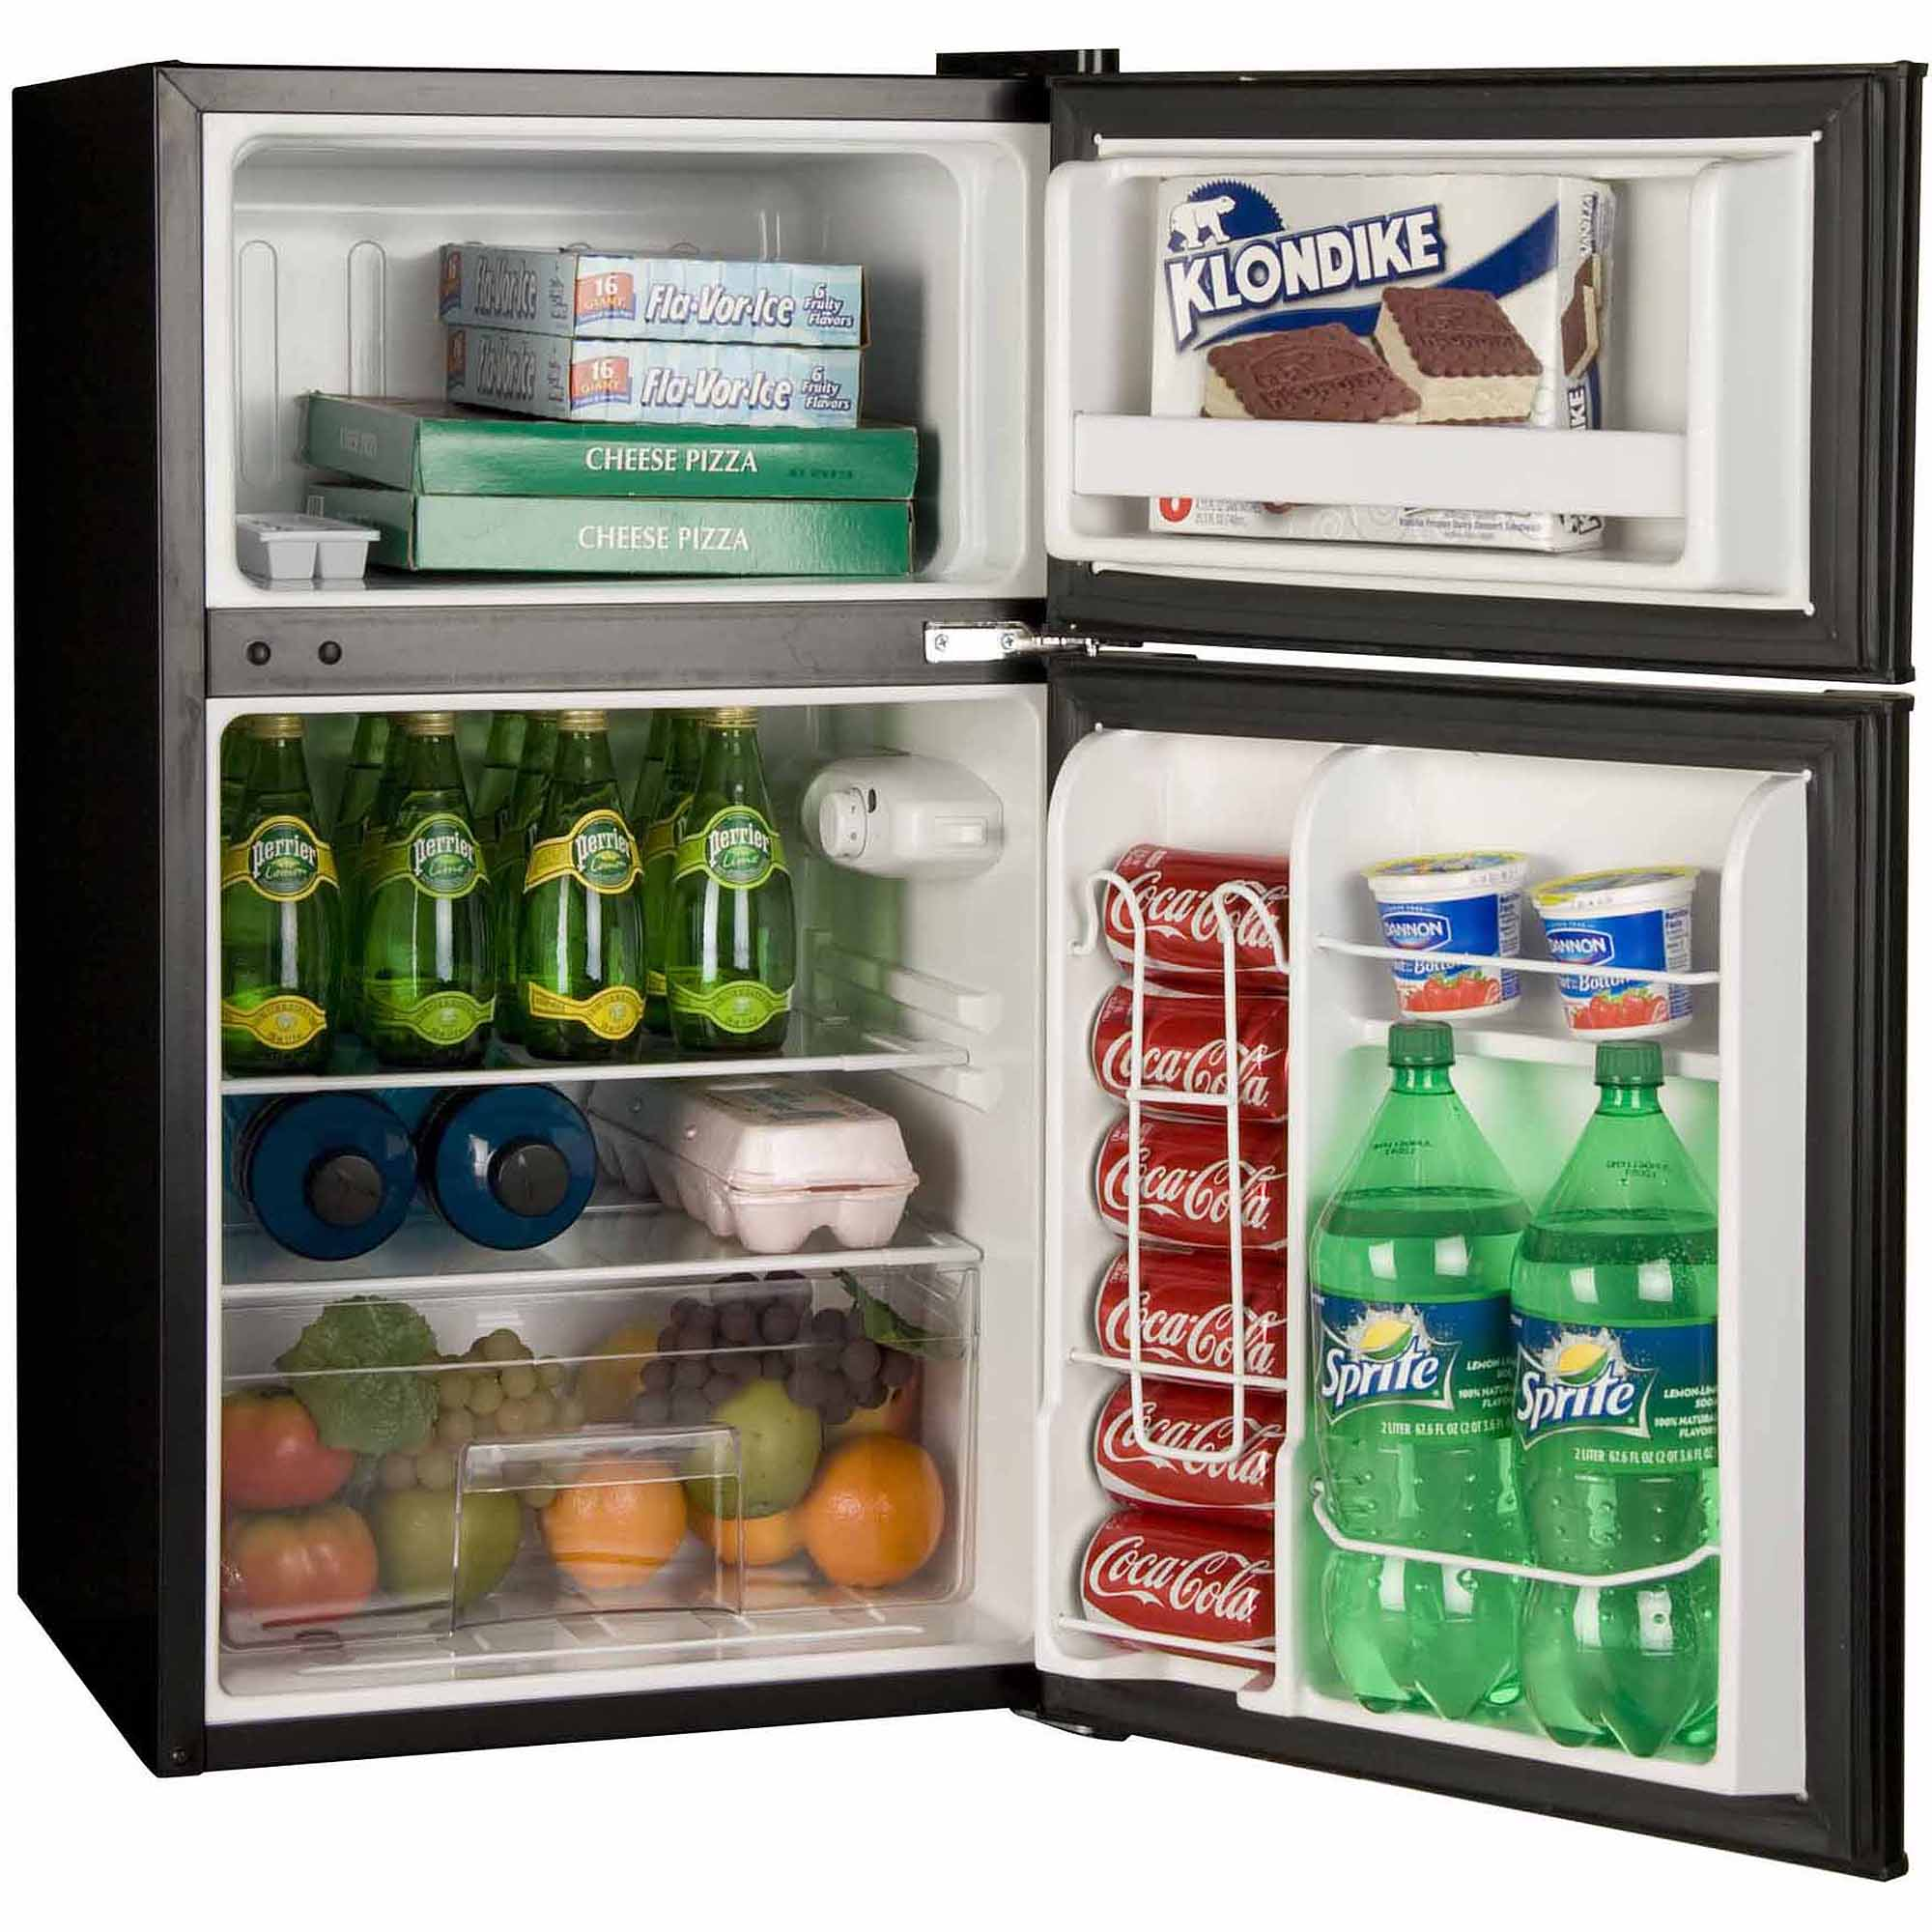 haier 1 7 cu ft refrigerator. carpet mini fridge haier 1 7 cu ft refrigerator black vax previous 2